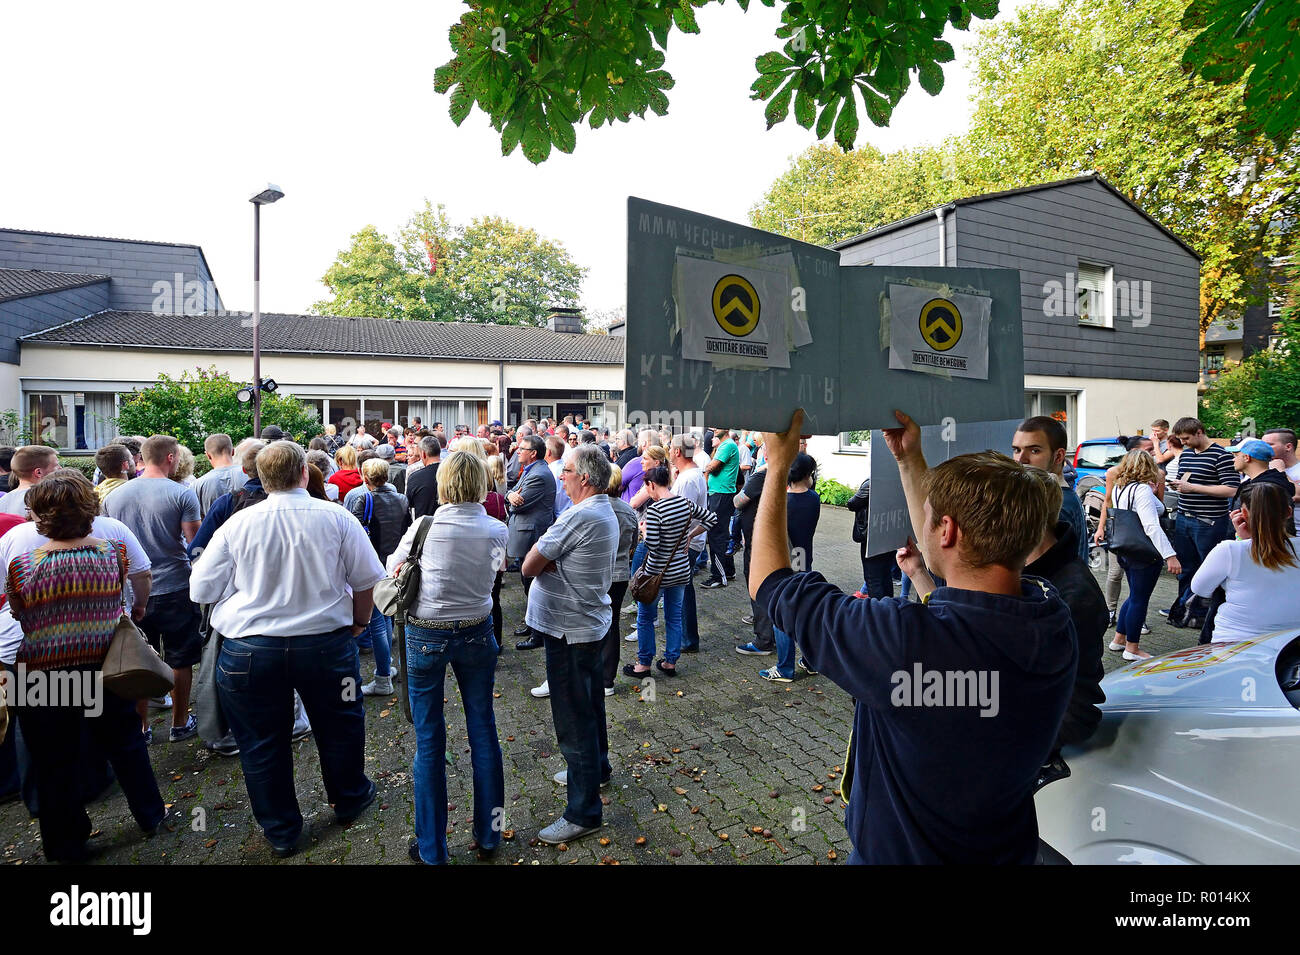 Germany, North Rhine-Westphalia - information event on refugees, including protesting supporters of the Identity Movement - Stock Image